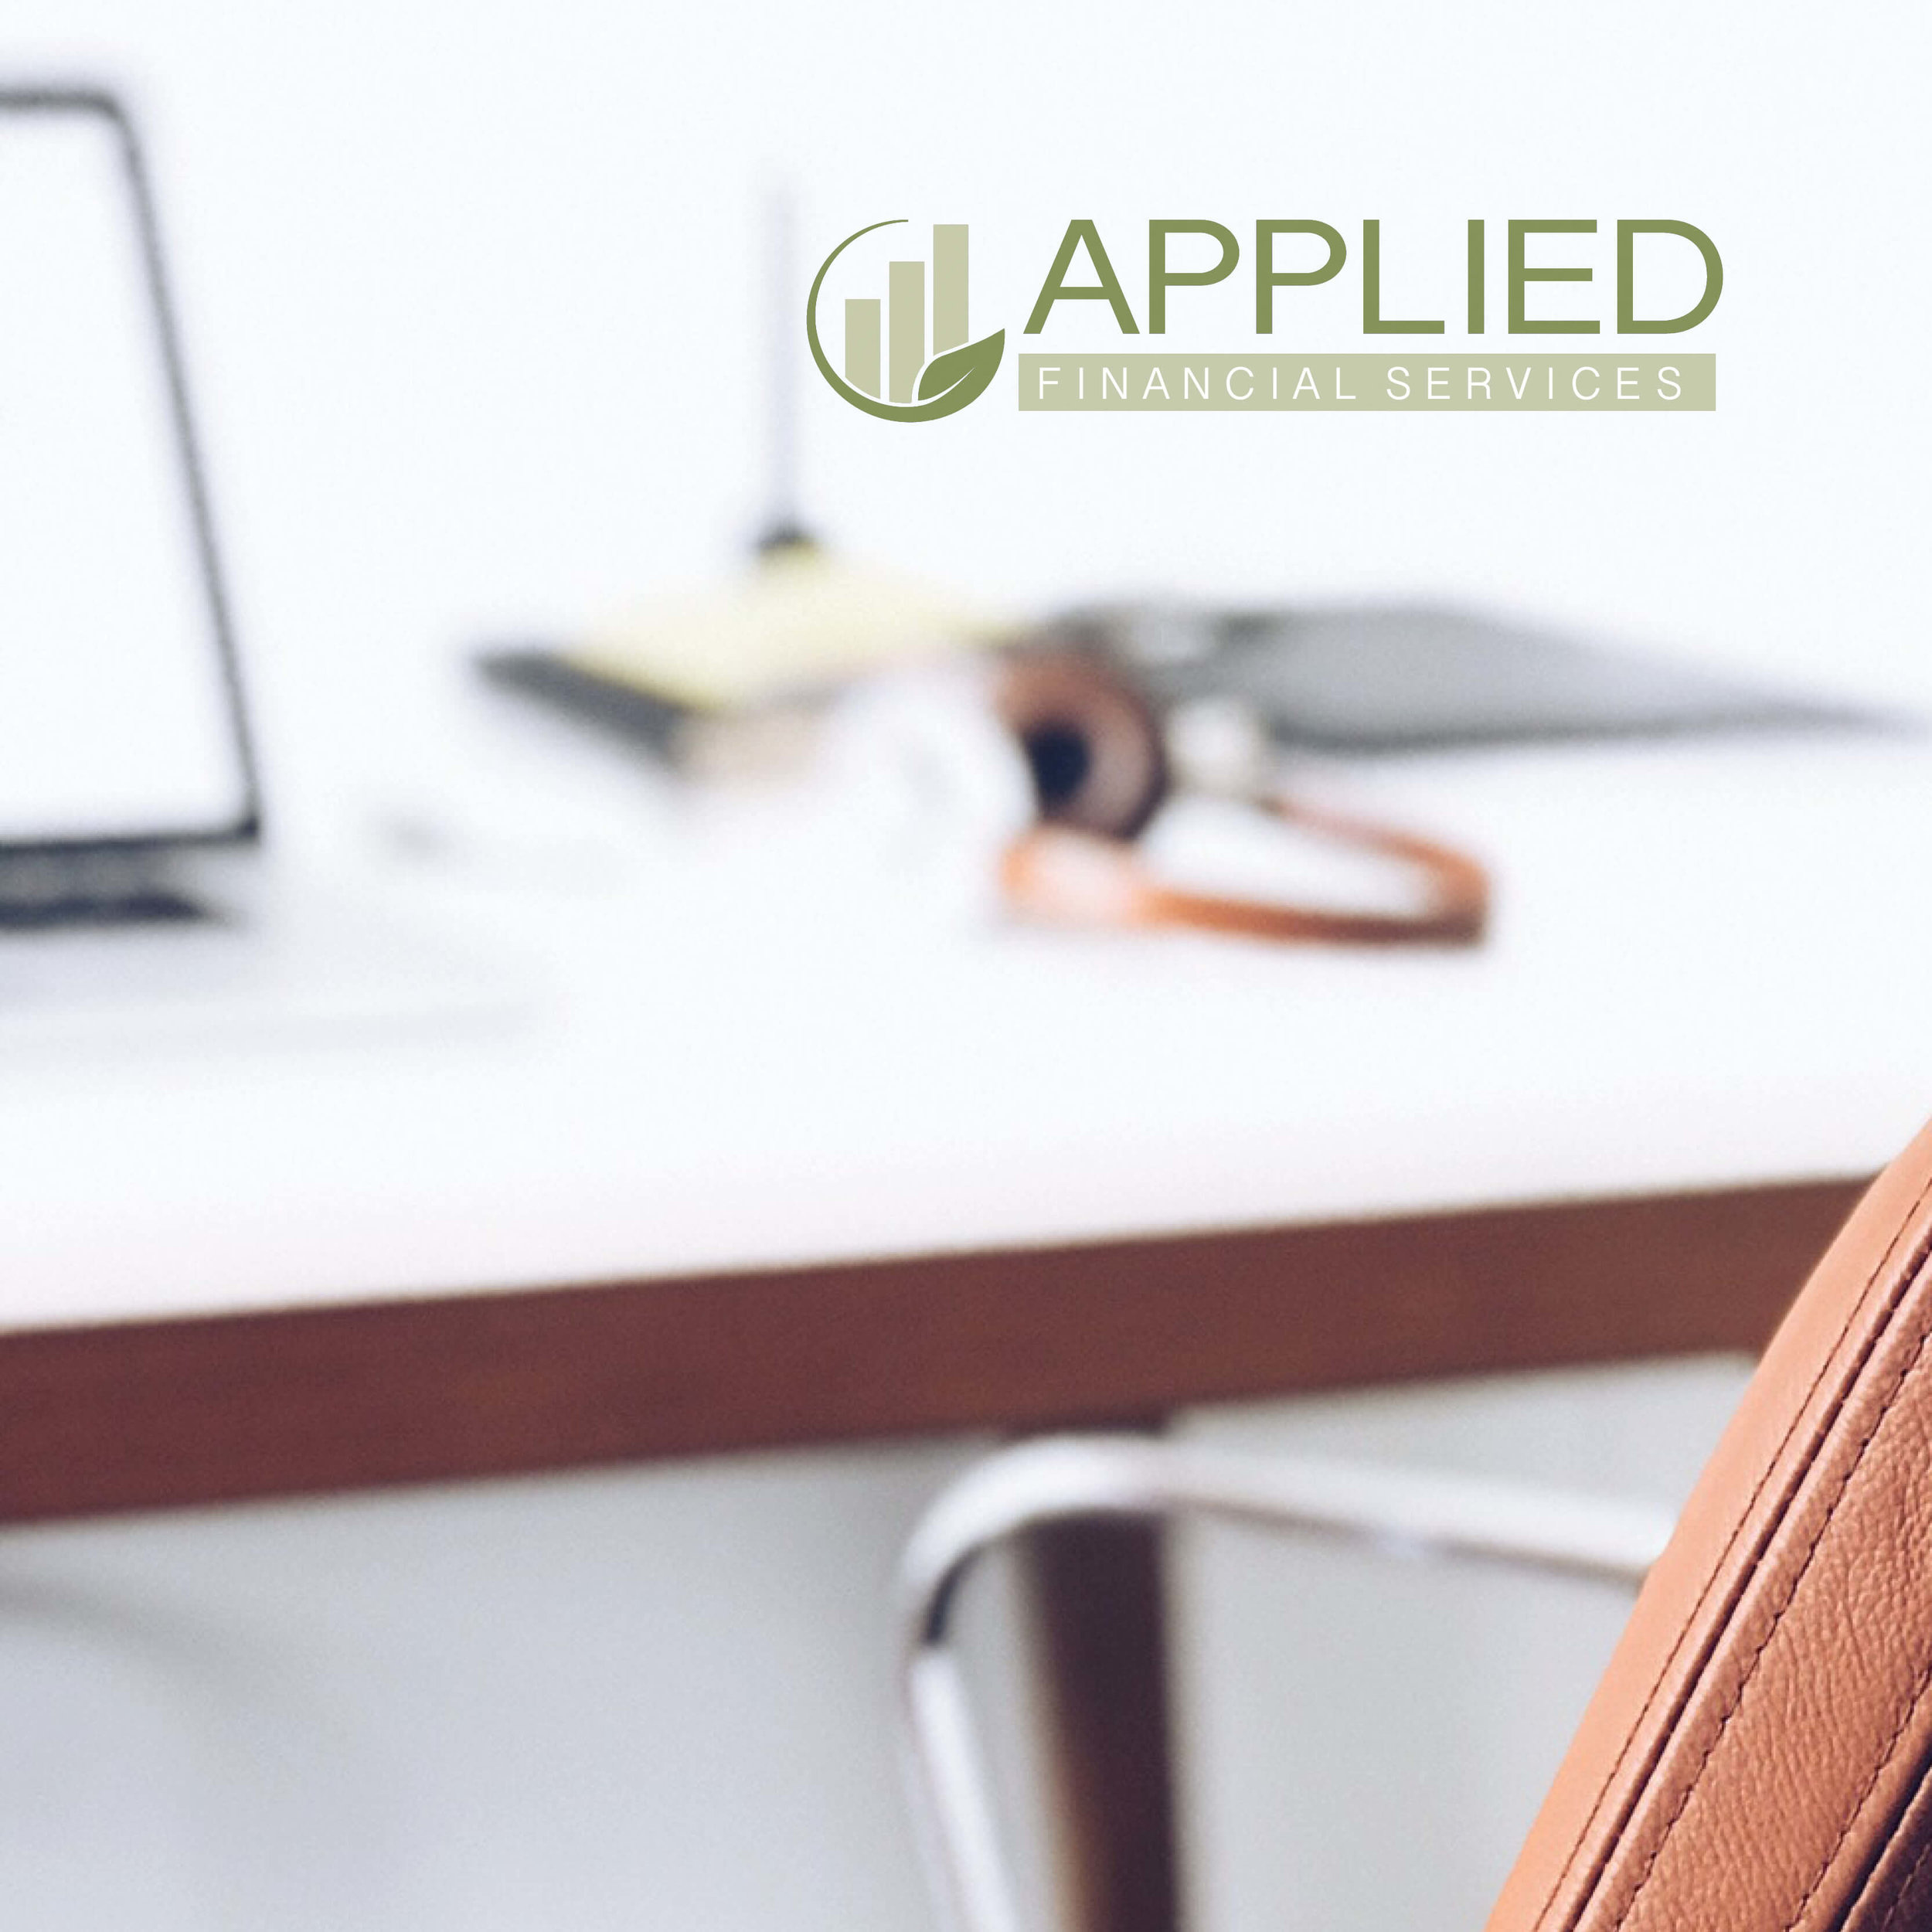 AppliedFinancialServices-Brand.jpg